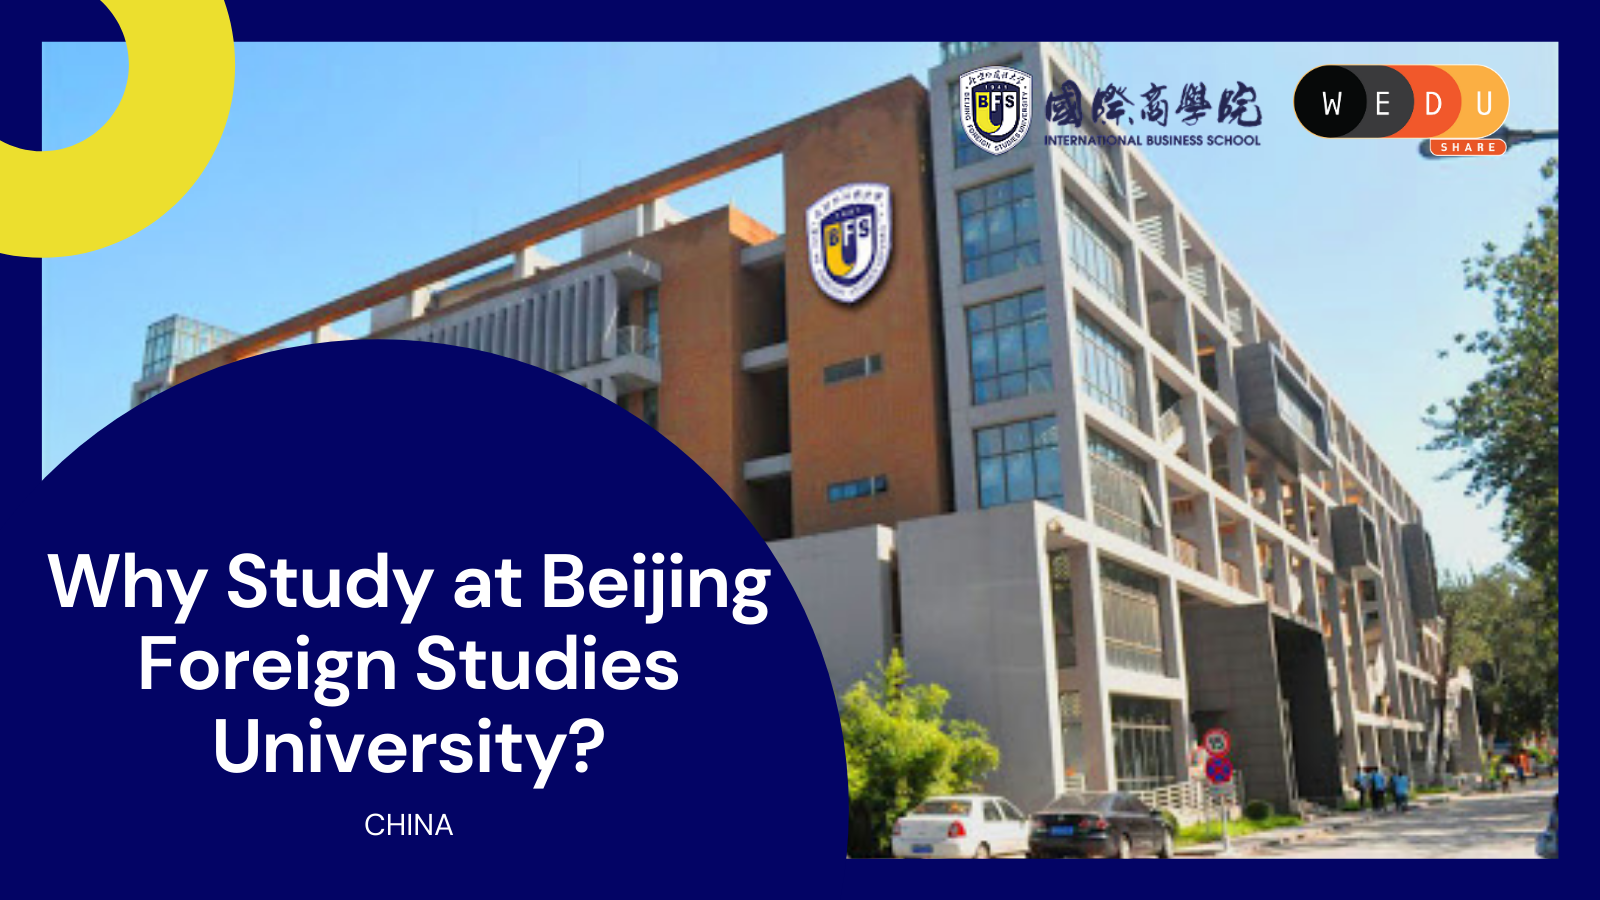 Why Should Study at Beijing Foreign Studies University in China?